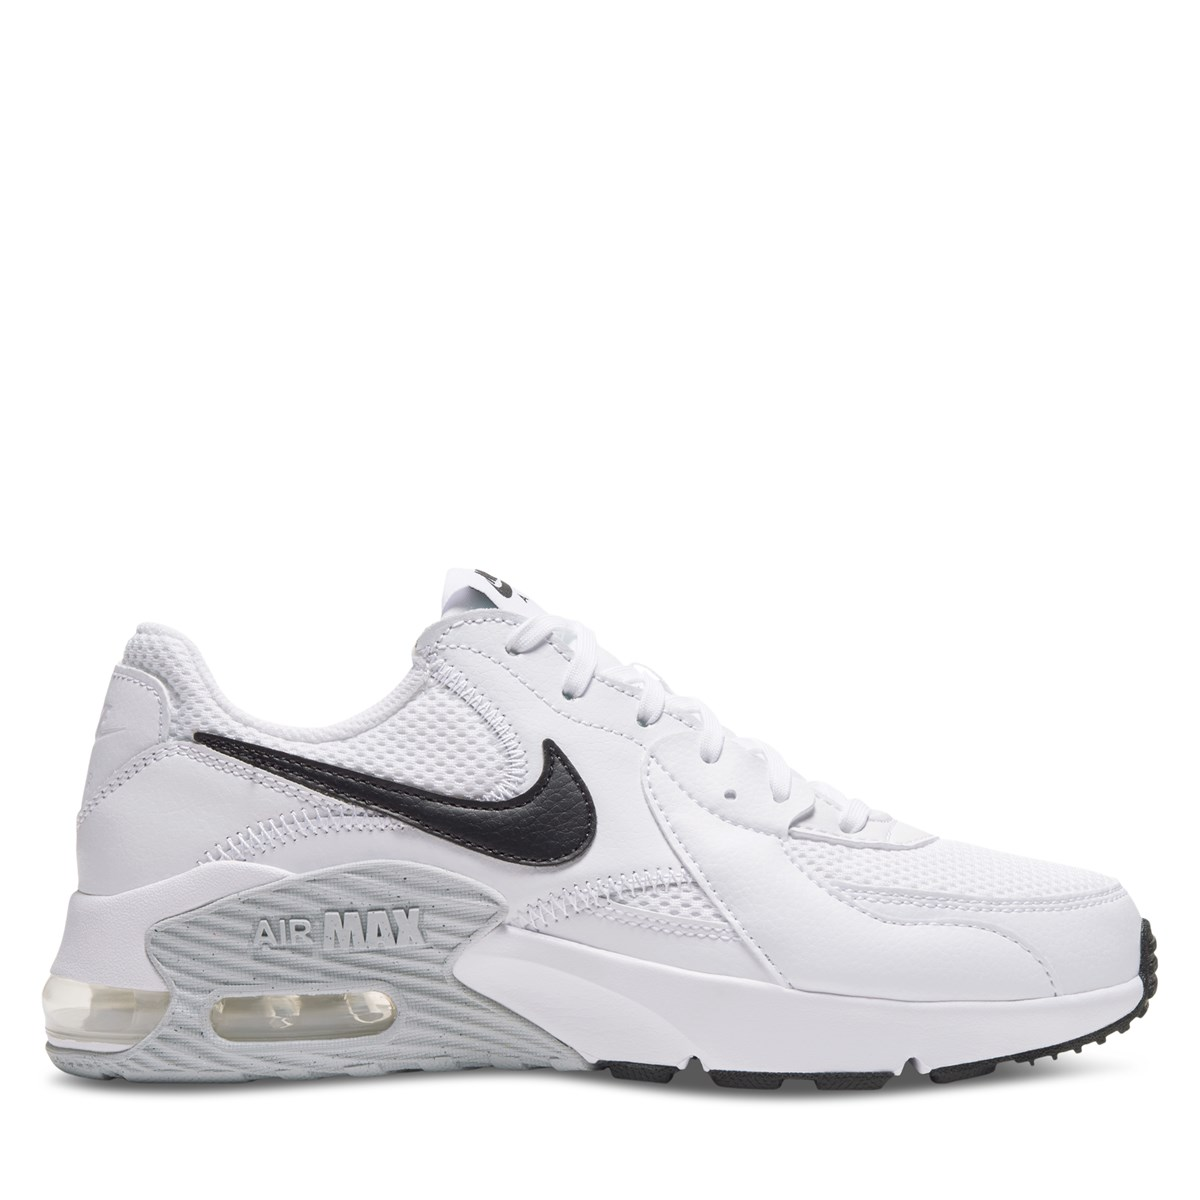 Women's Air Max Excee Sneakers in White